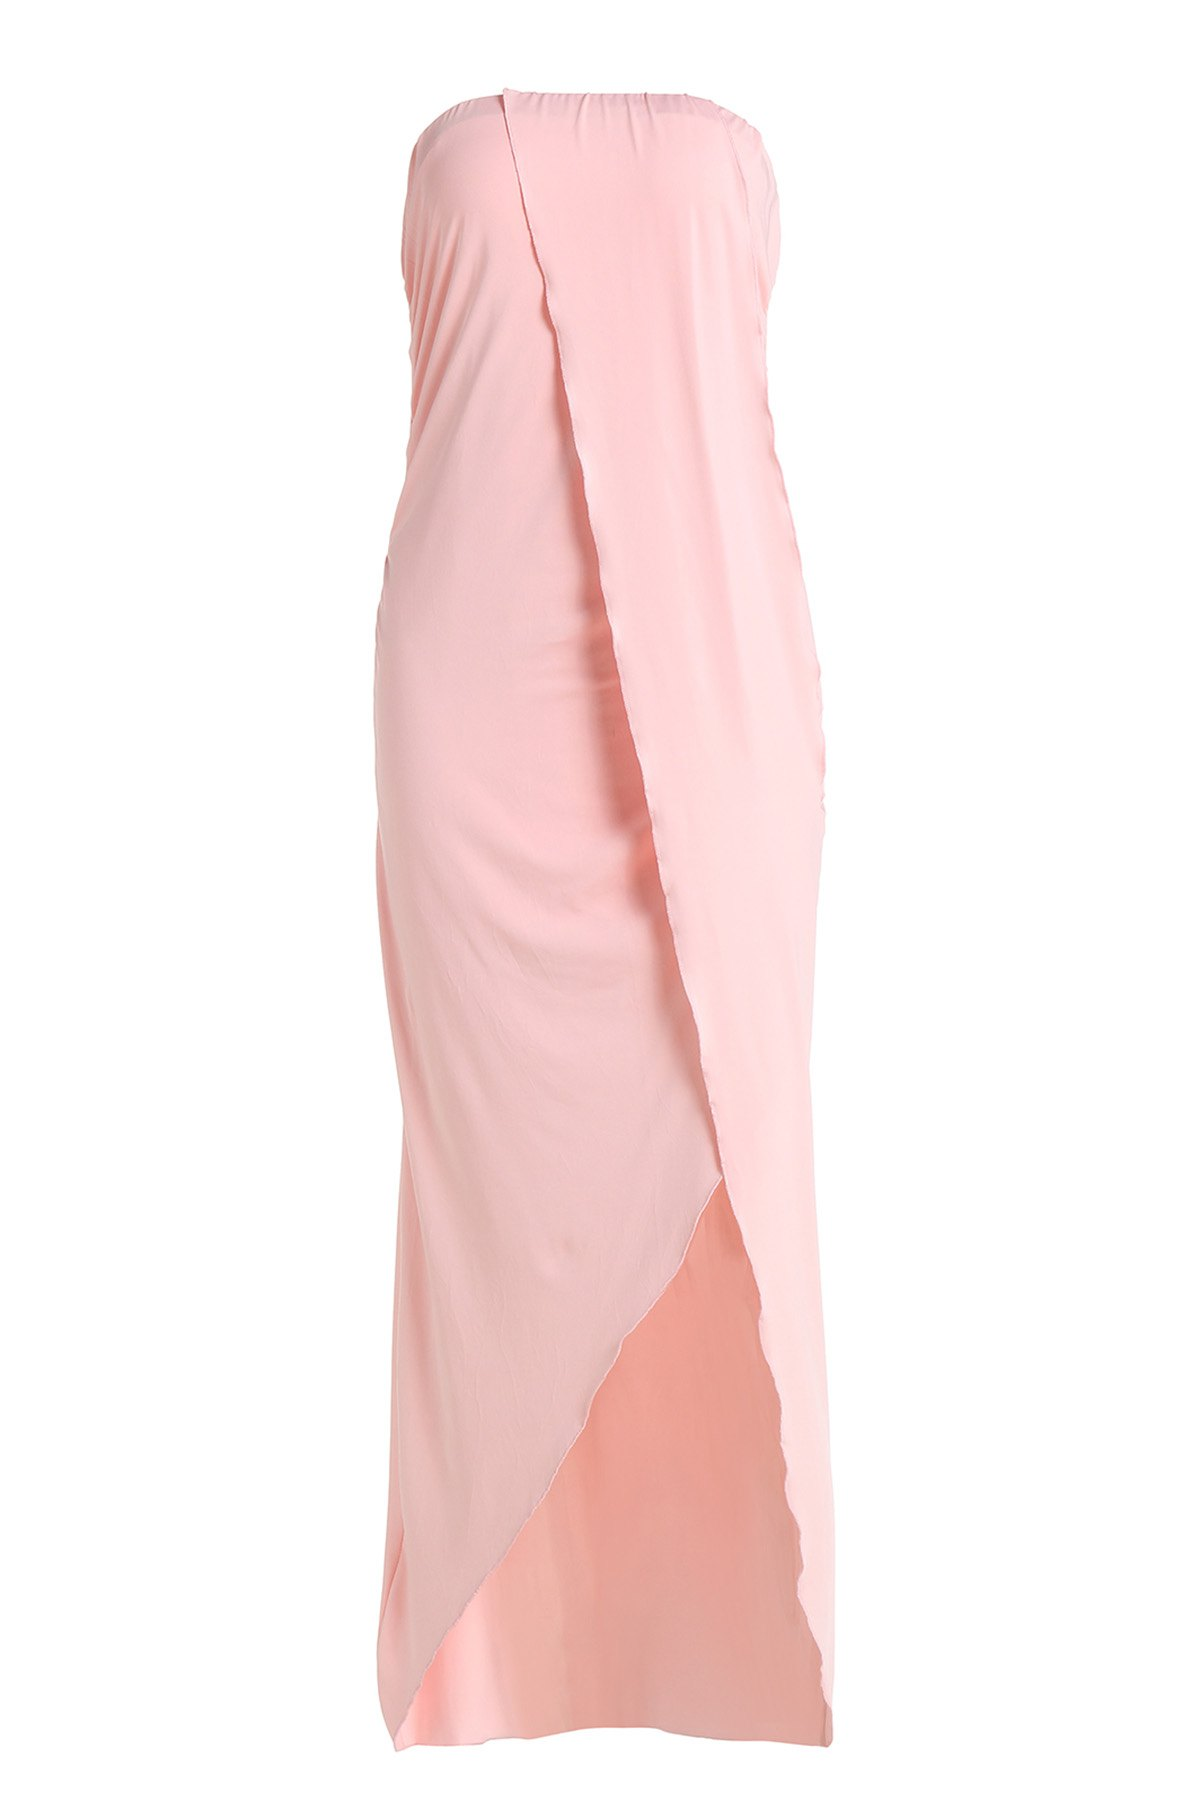 Sexy Strapless Sleeveless Solid Color Asymmetrical Women's Dress